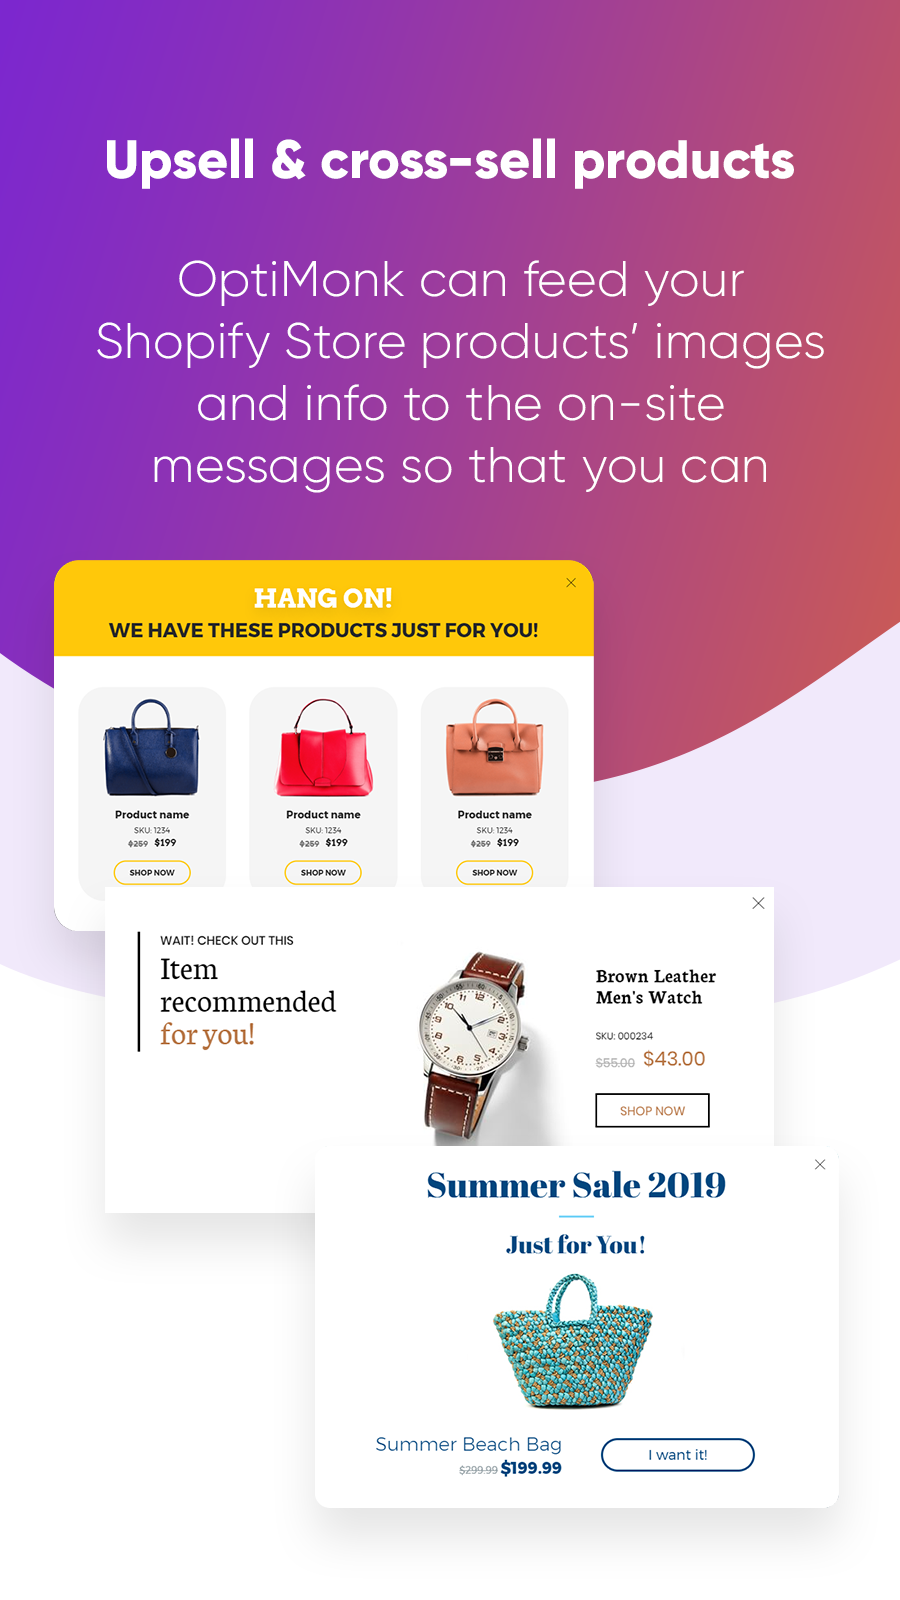 upsell and recommend product on popups, sidemessages